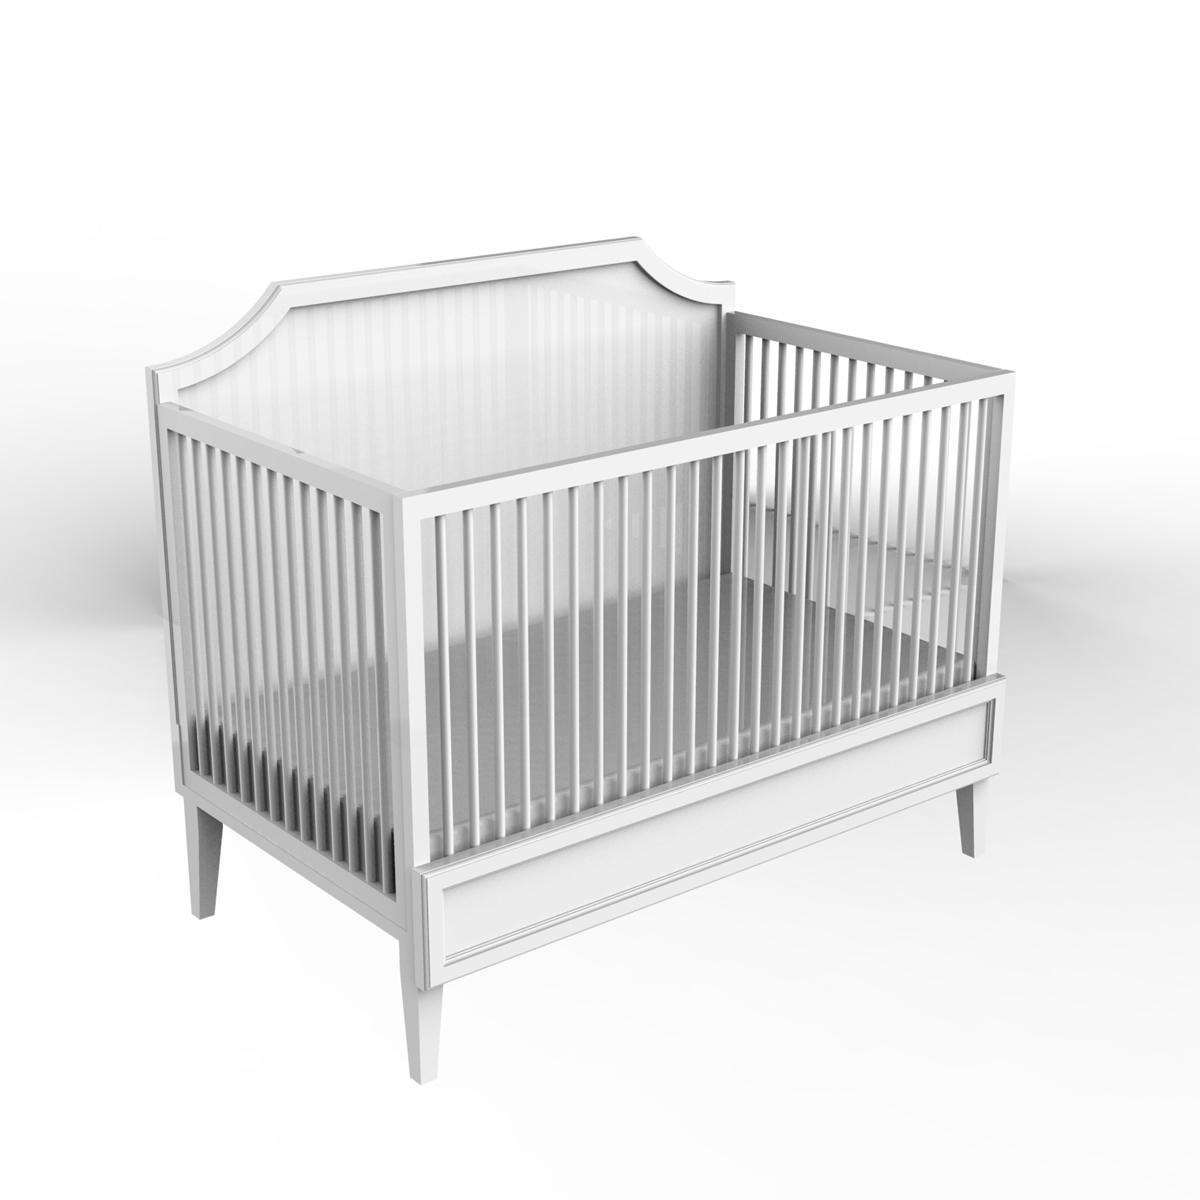 Ducduc Litchfield collection crib white